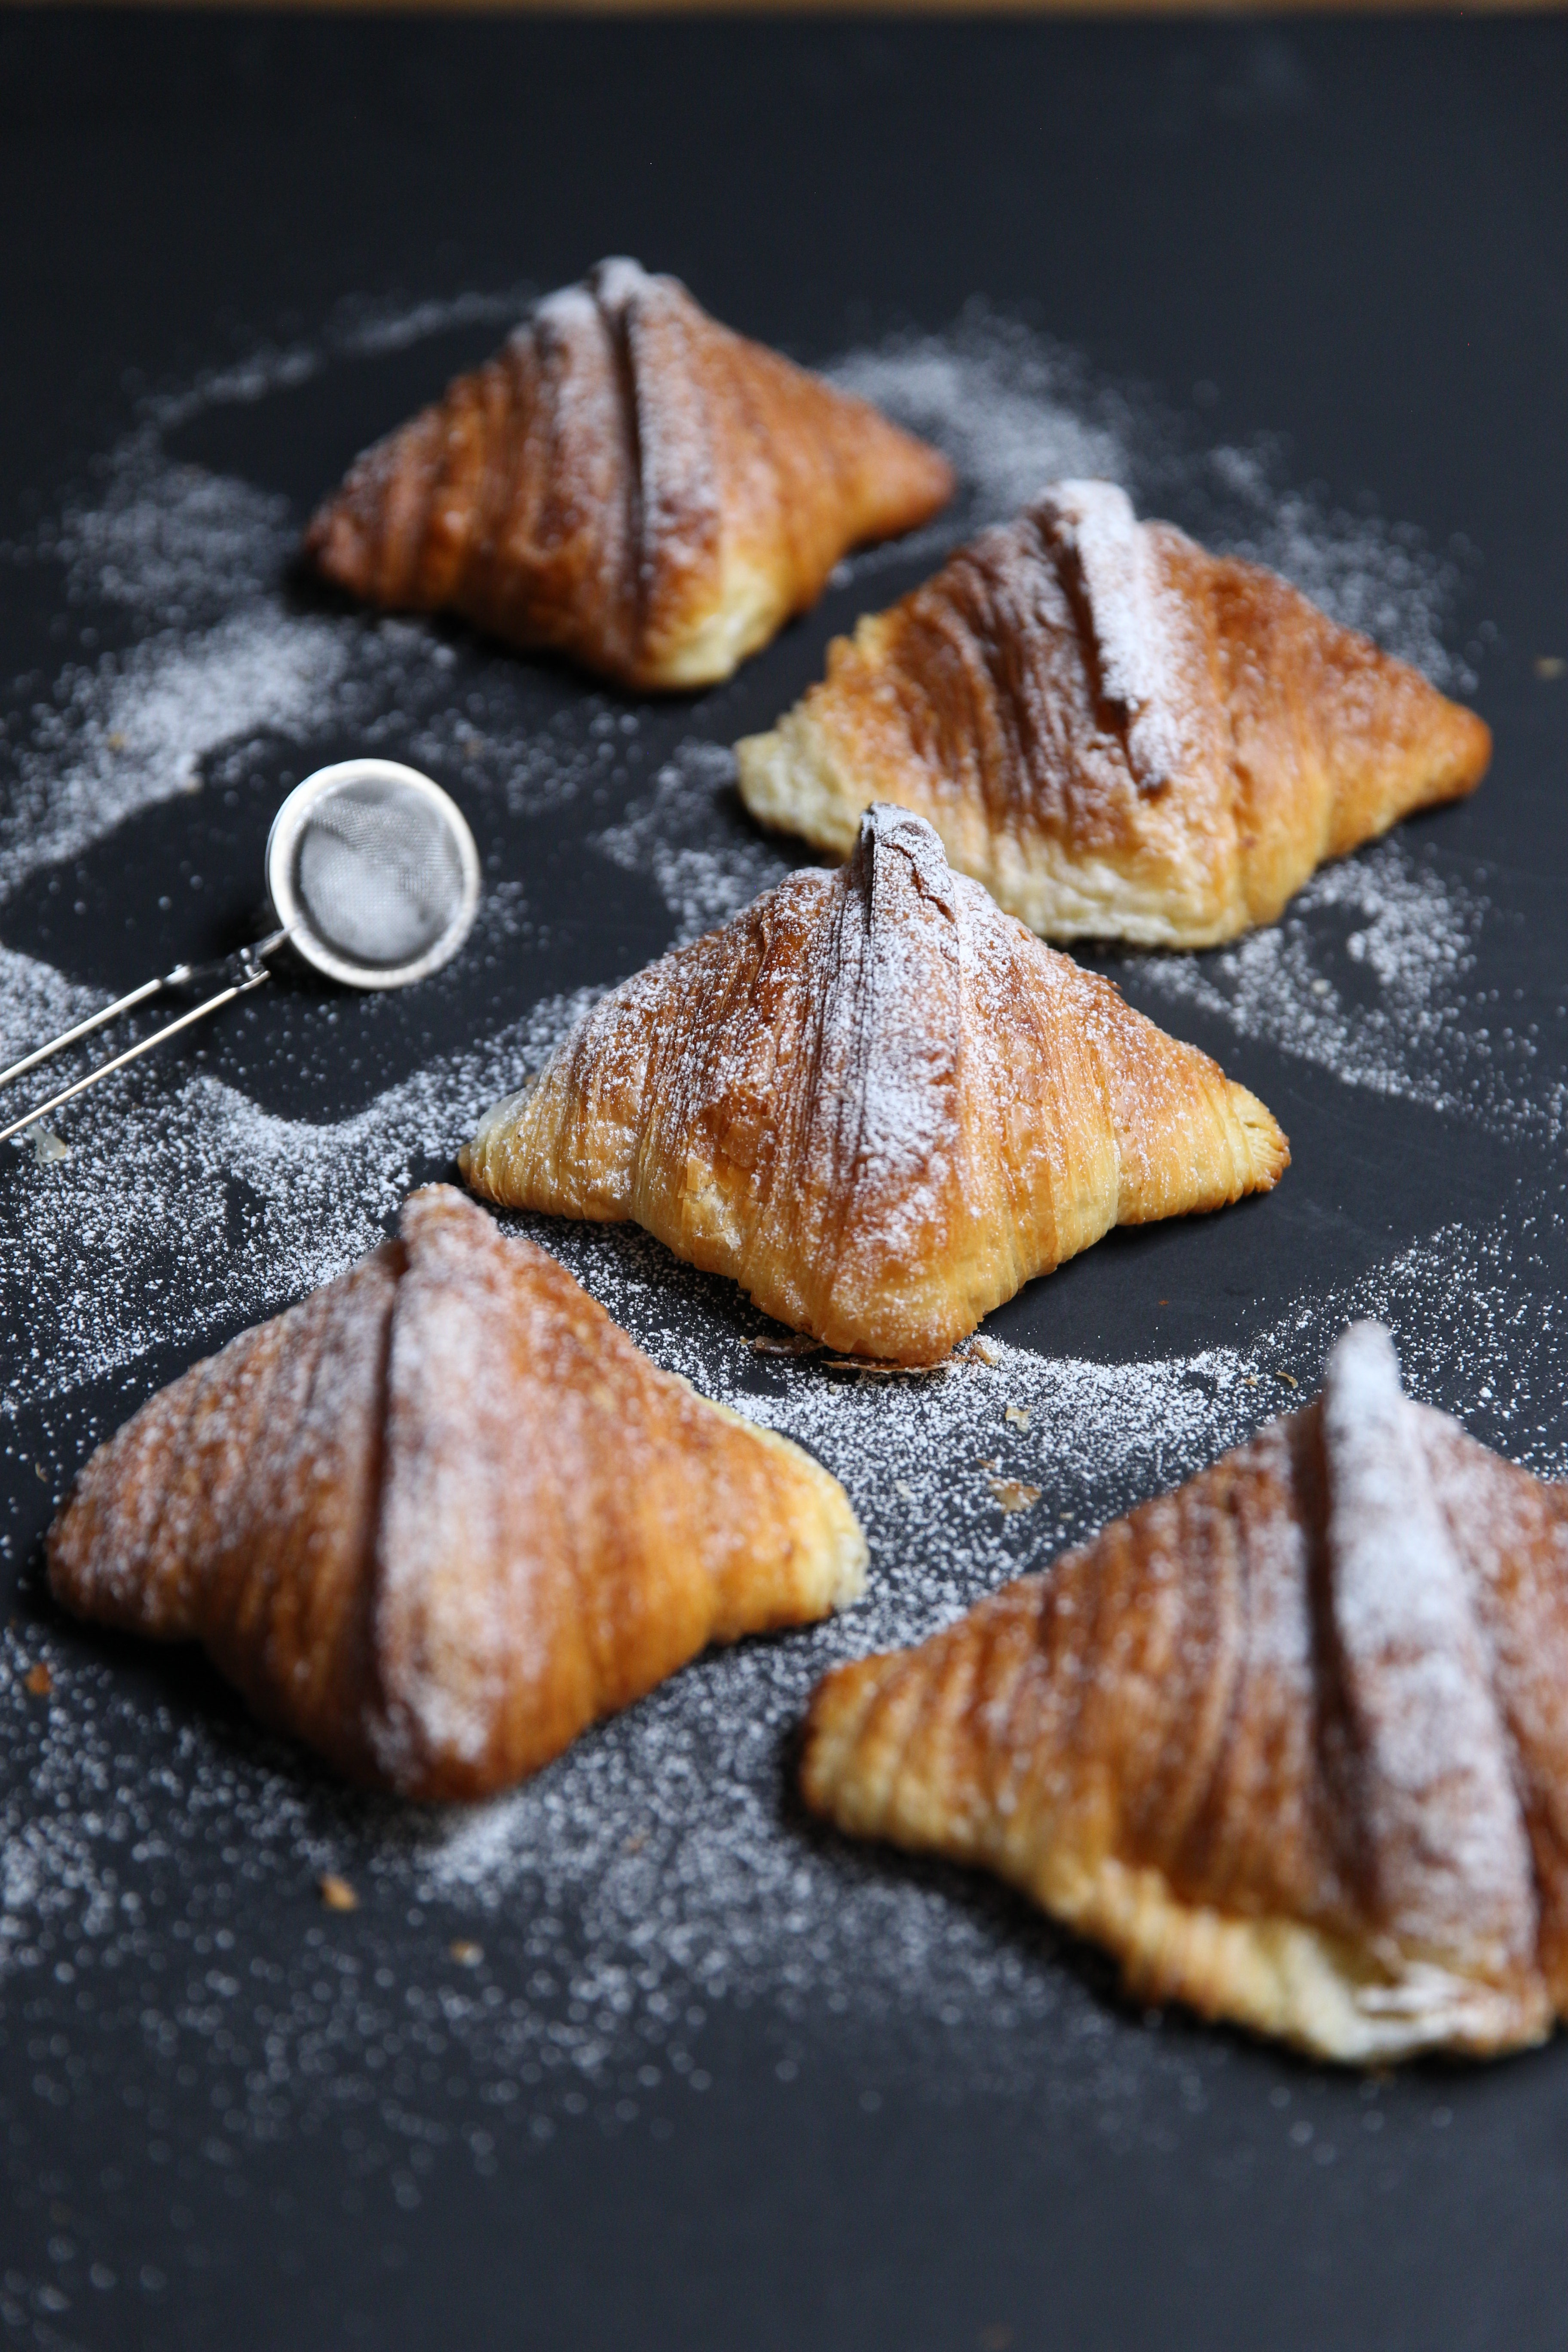 Croissant with powdered sugar